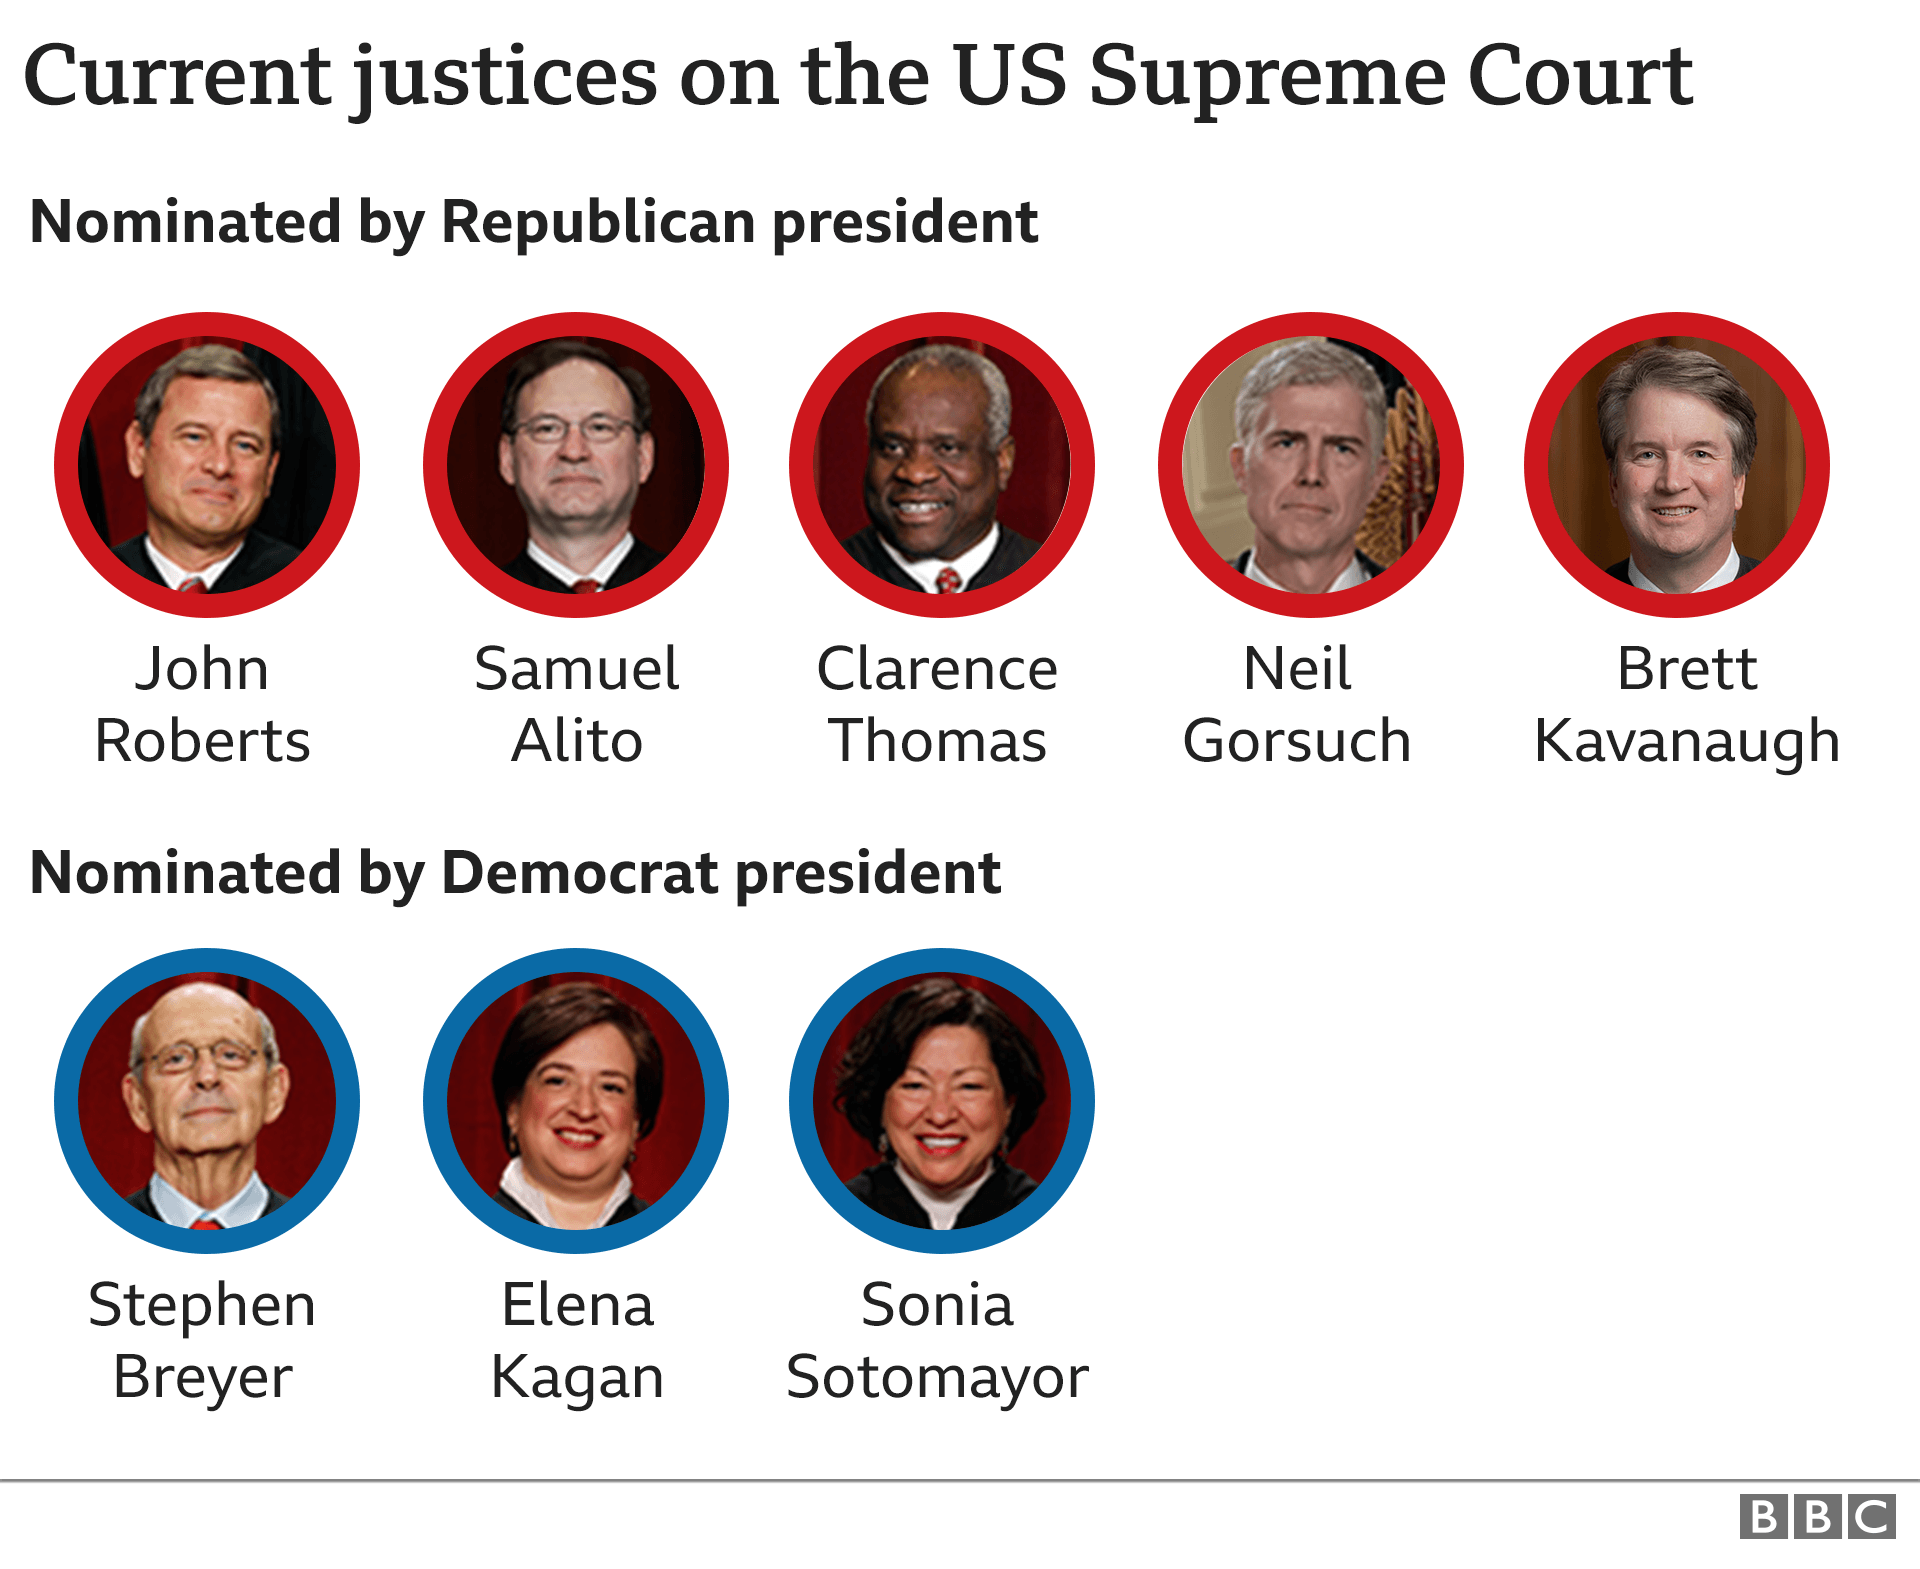 A graph showing the current justices